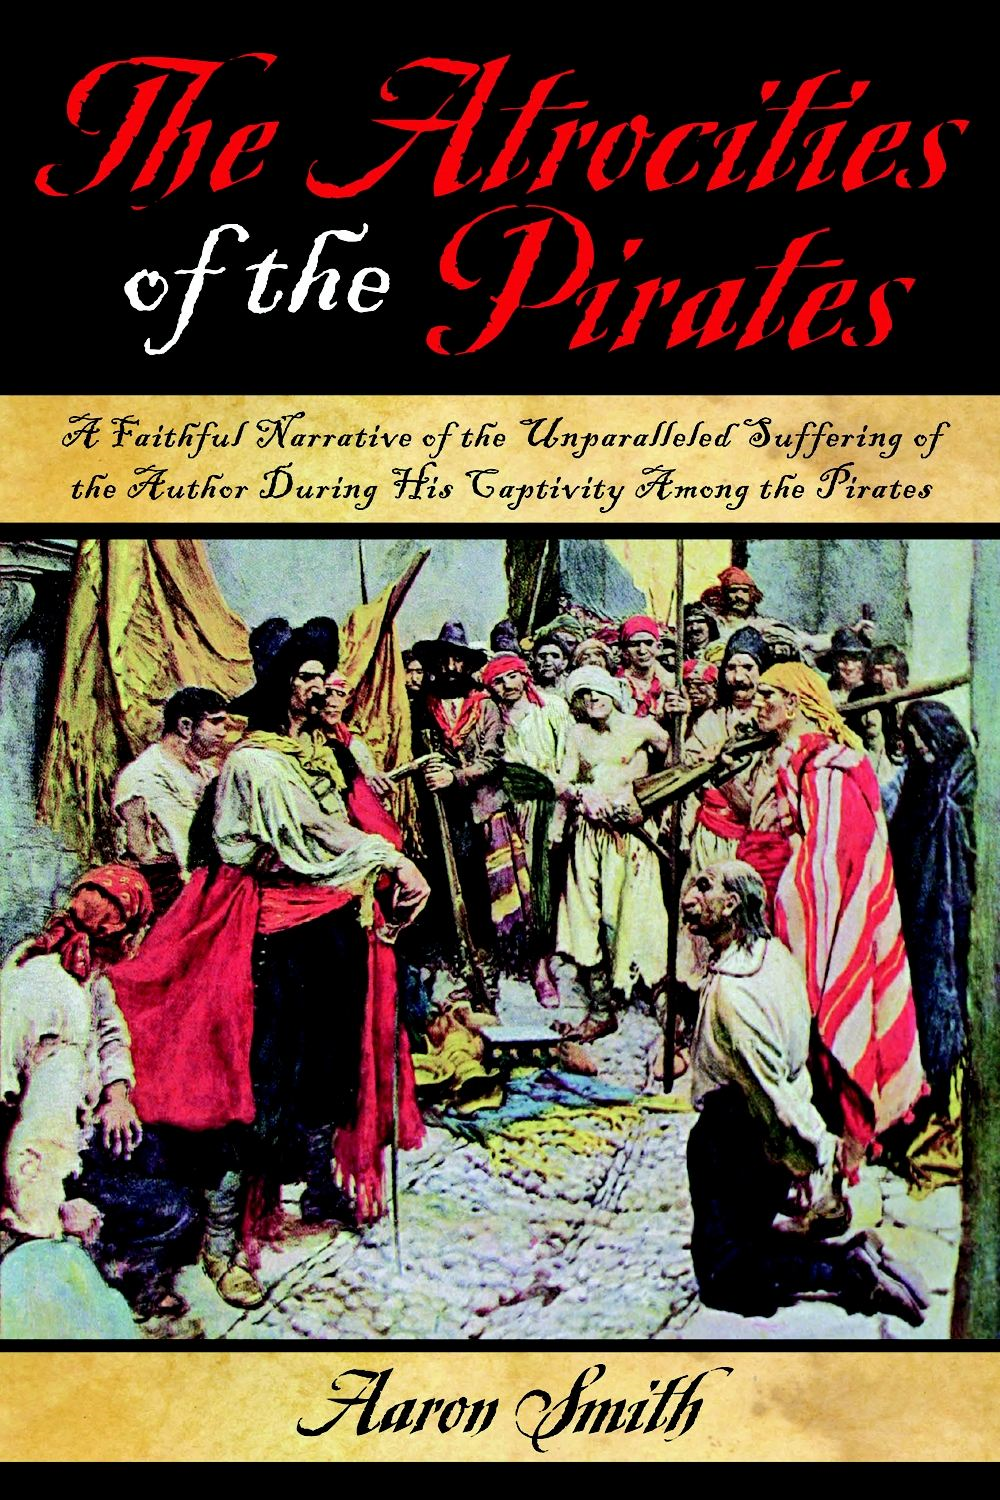 The Atrocities of the Pirates: A Faithful Narrative of the Unparalleled Suffering of the Author During His Captivity Among the Pirates By: Aaron Smith